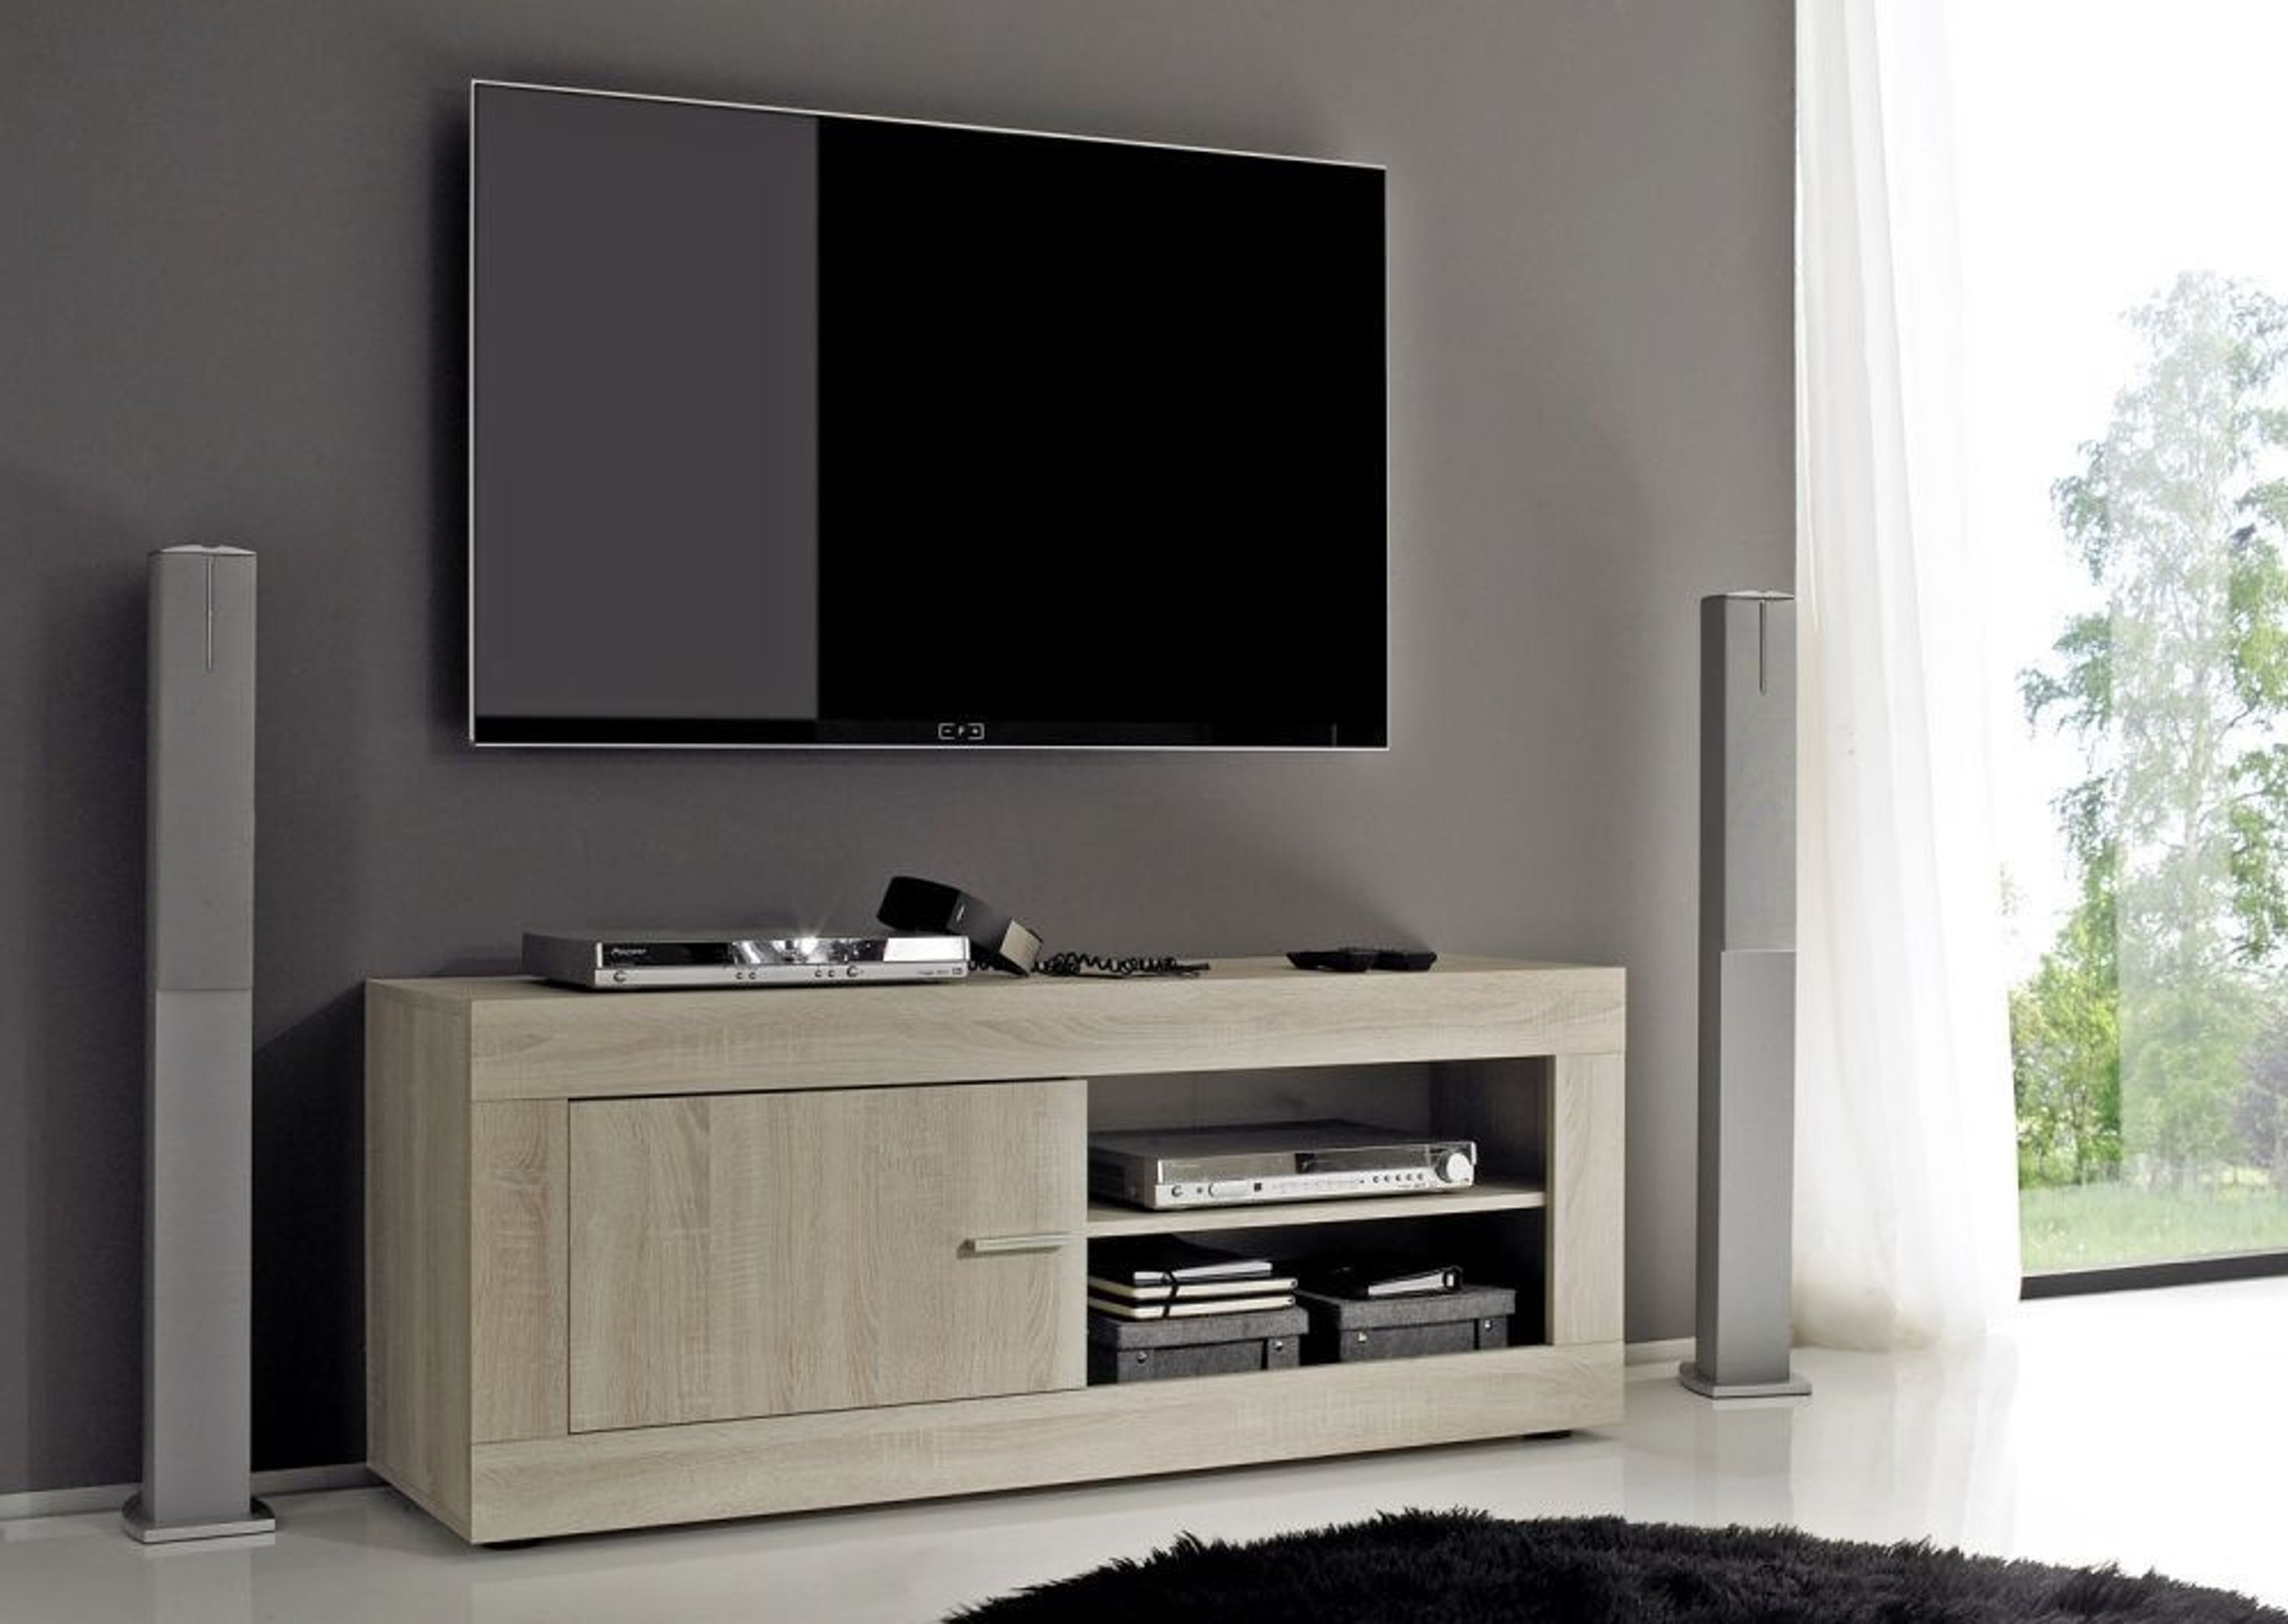 tv unterteil rustic sonoma eiche melamin kaufen bei. Black Bedroom Furniture Sets. Home Design Ideas